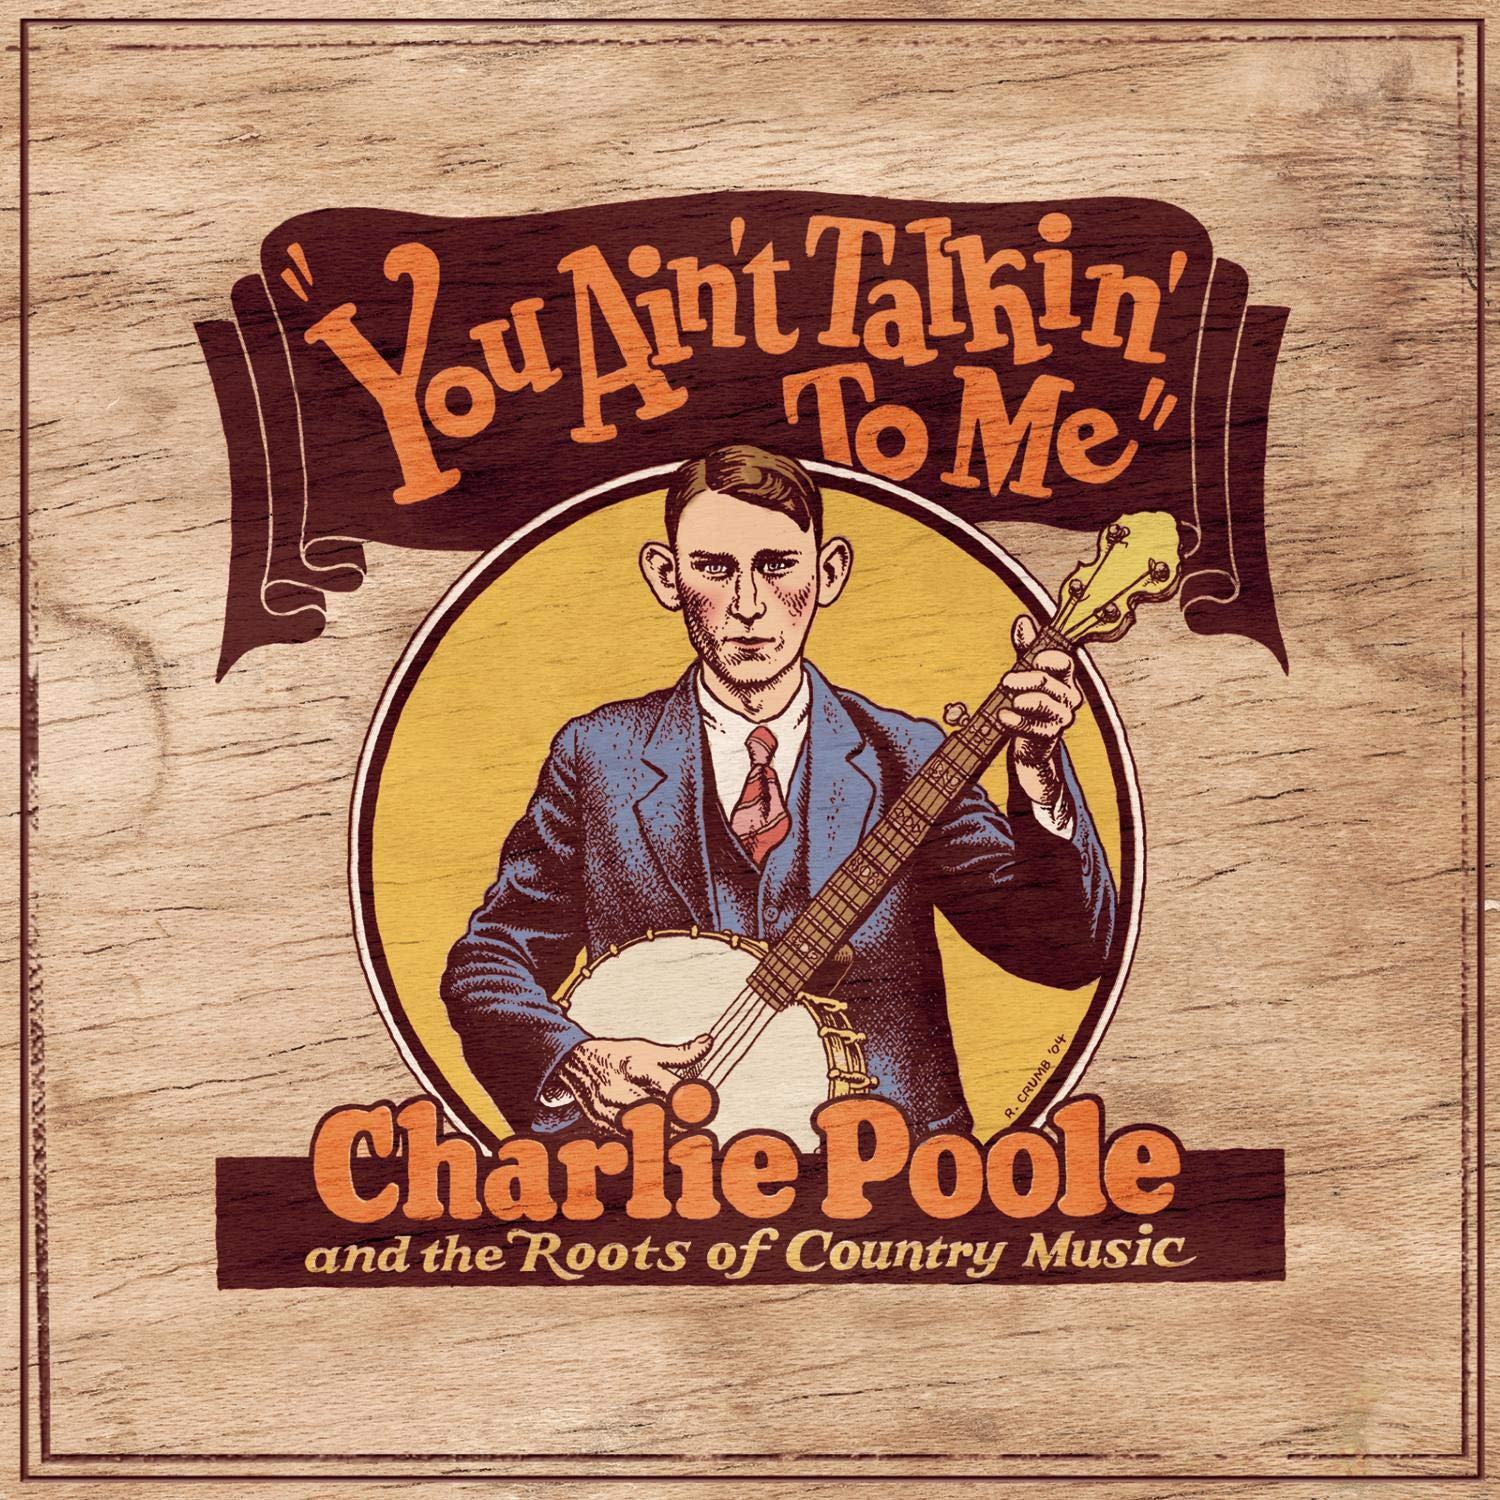 You Ain't Talkin' to Me: Charlie Poole and the Roots of Country Music by Sony Legacy